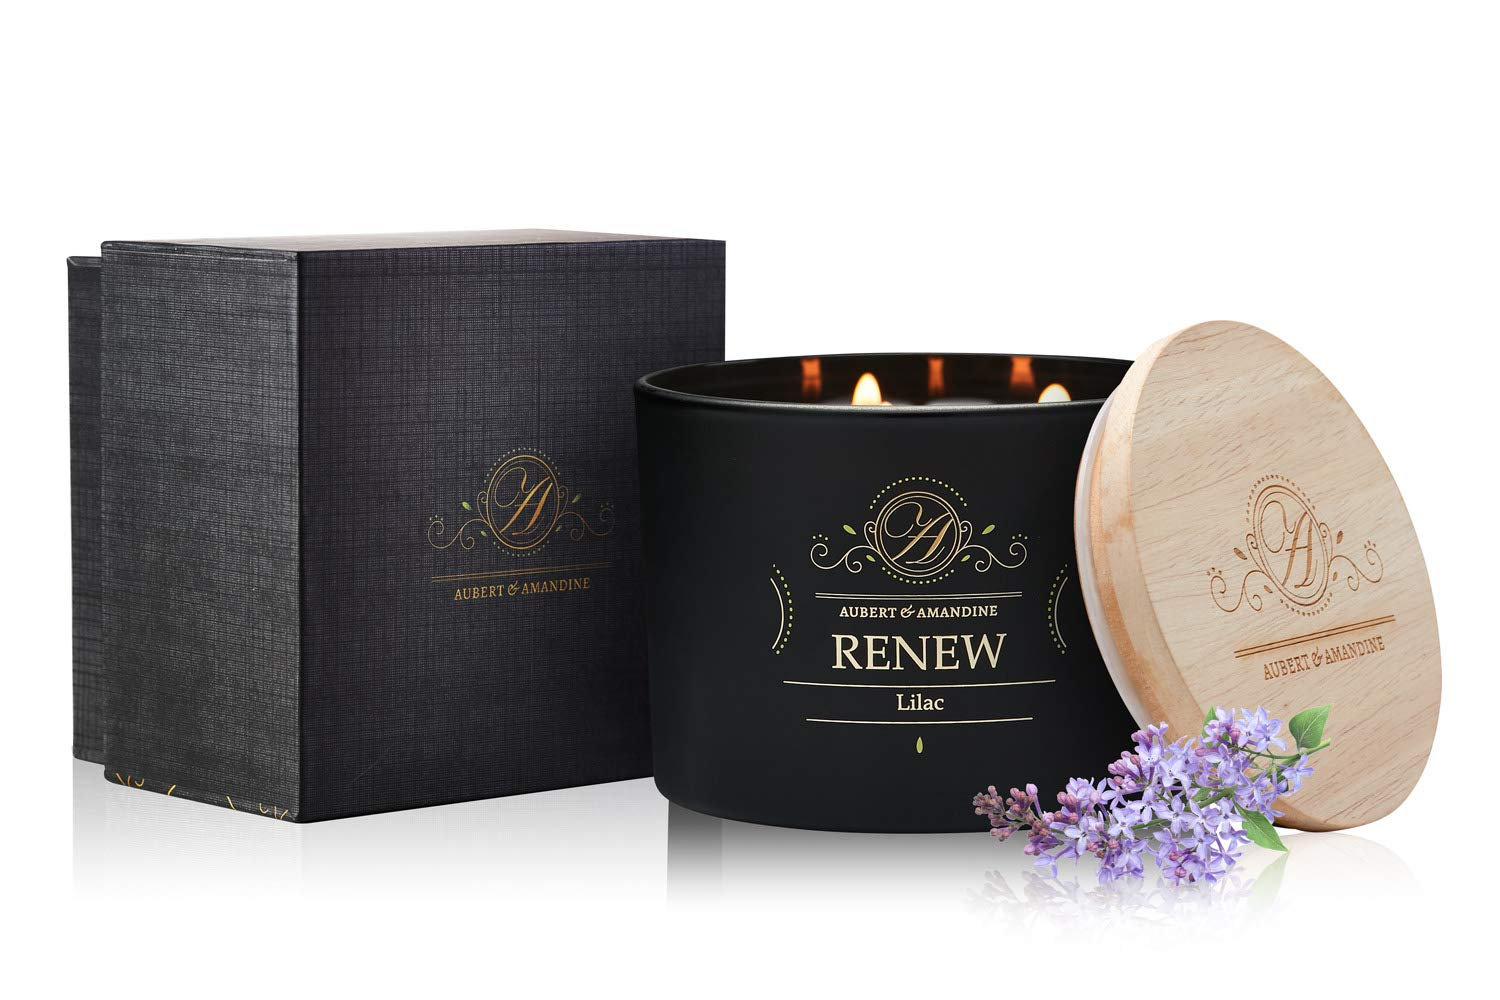 Aubert & Amandine Renew Lilac Luxury Scented 3 Wick Soy Candle for Stress Relief & Relaxation High Intensity Aromatherapy